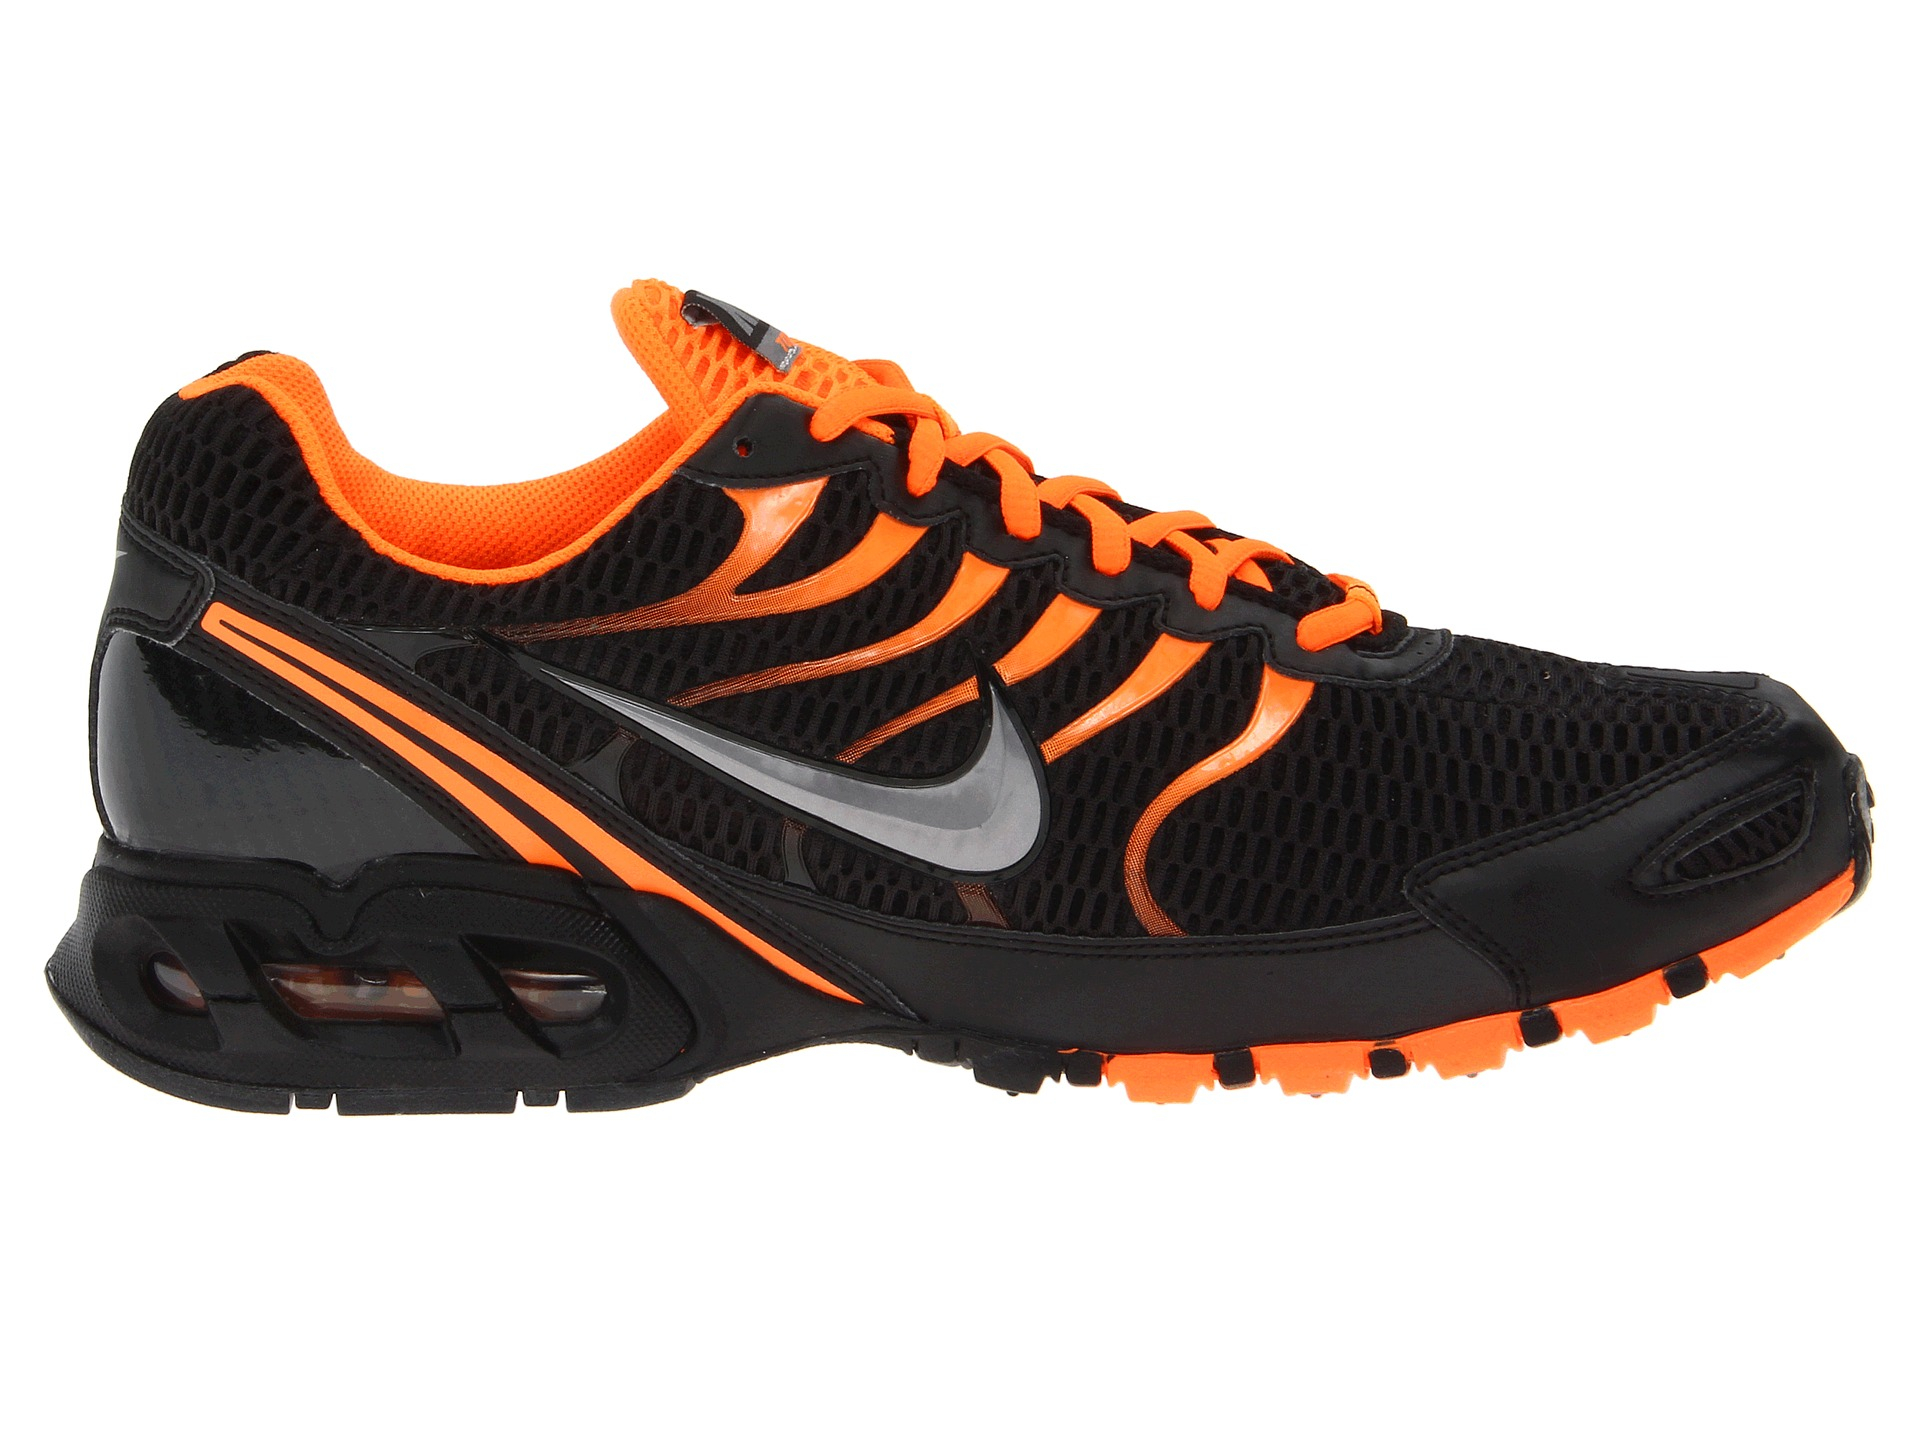 torch men Durable support for long-lasting wear the men's nike air max torch 4 running shoe combines durable cushioning with a flexible upper that delivers support and comfort.